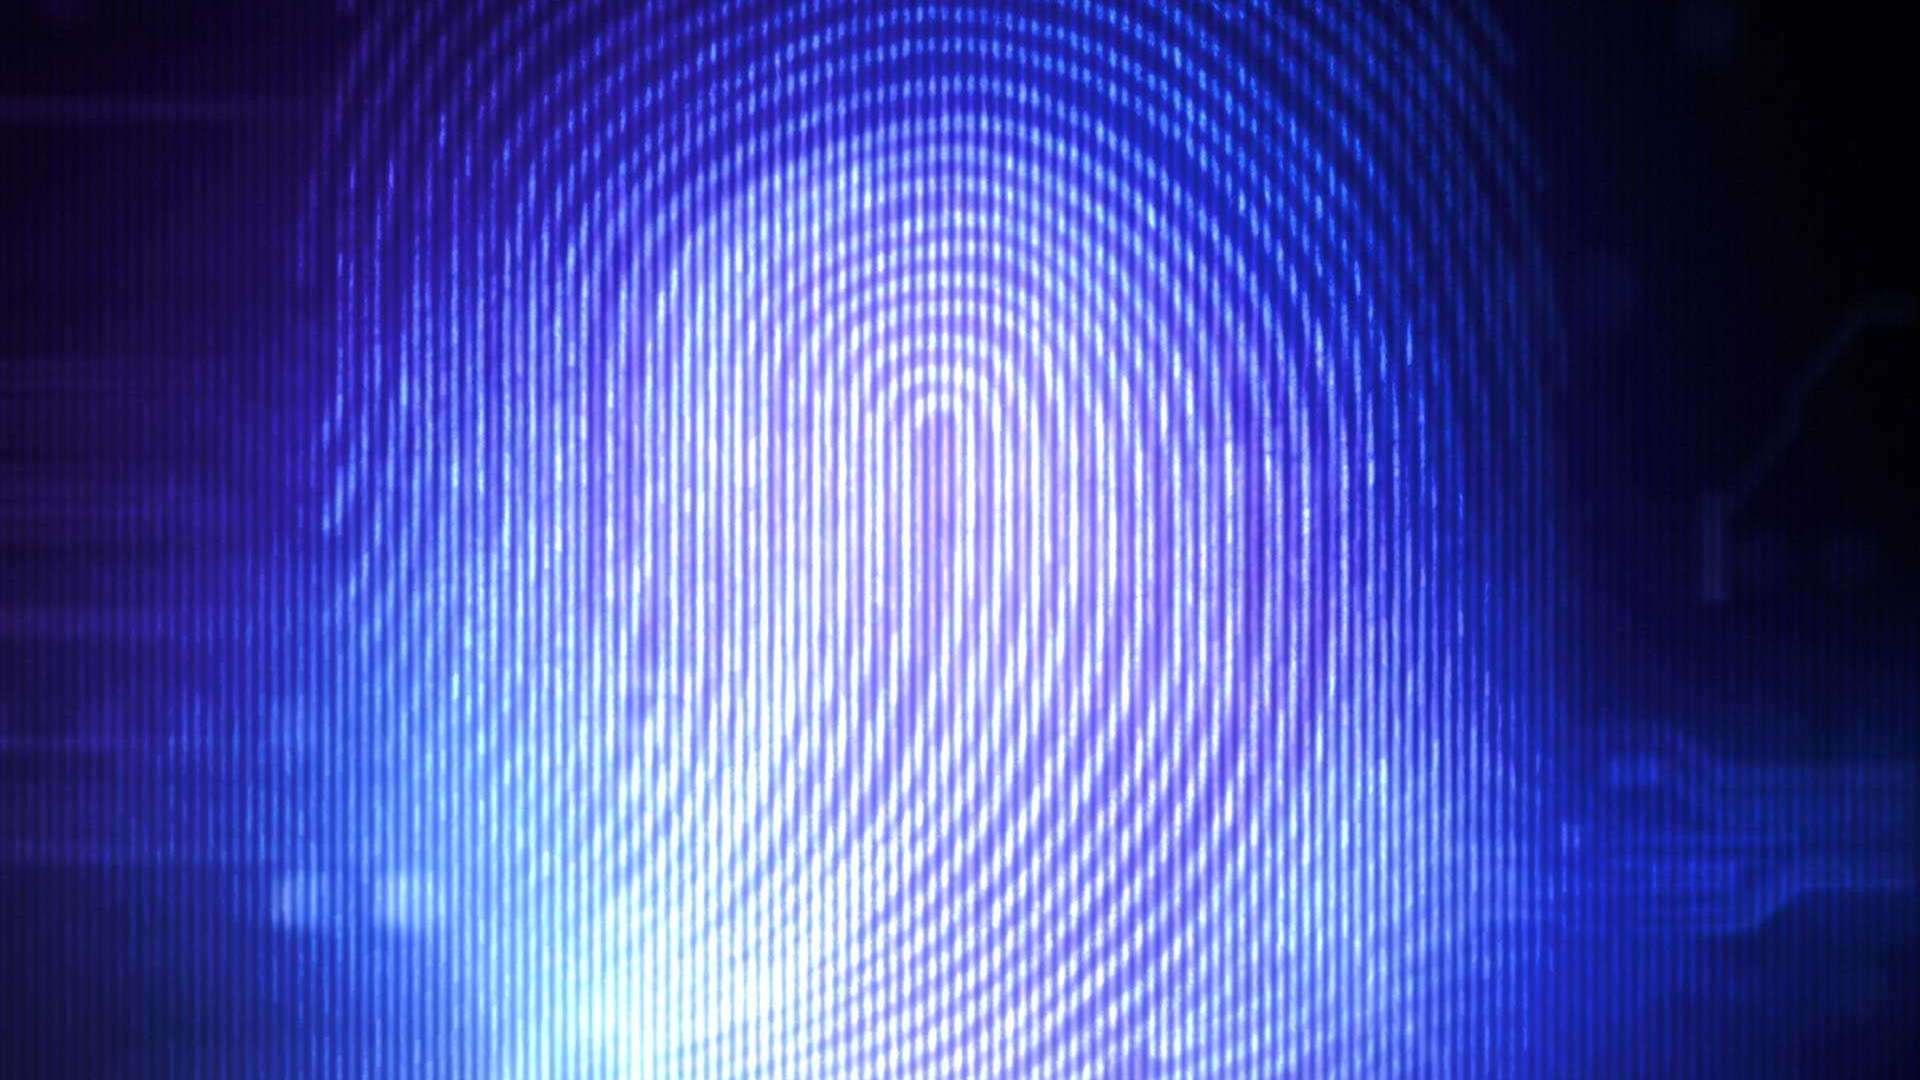 Biometric, fingerprint, and iris recognition technology will expand